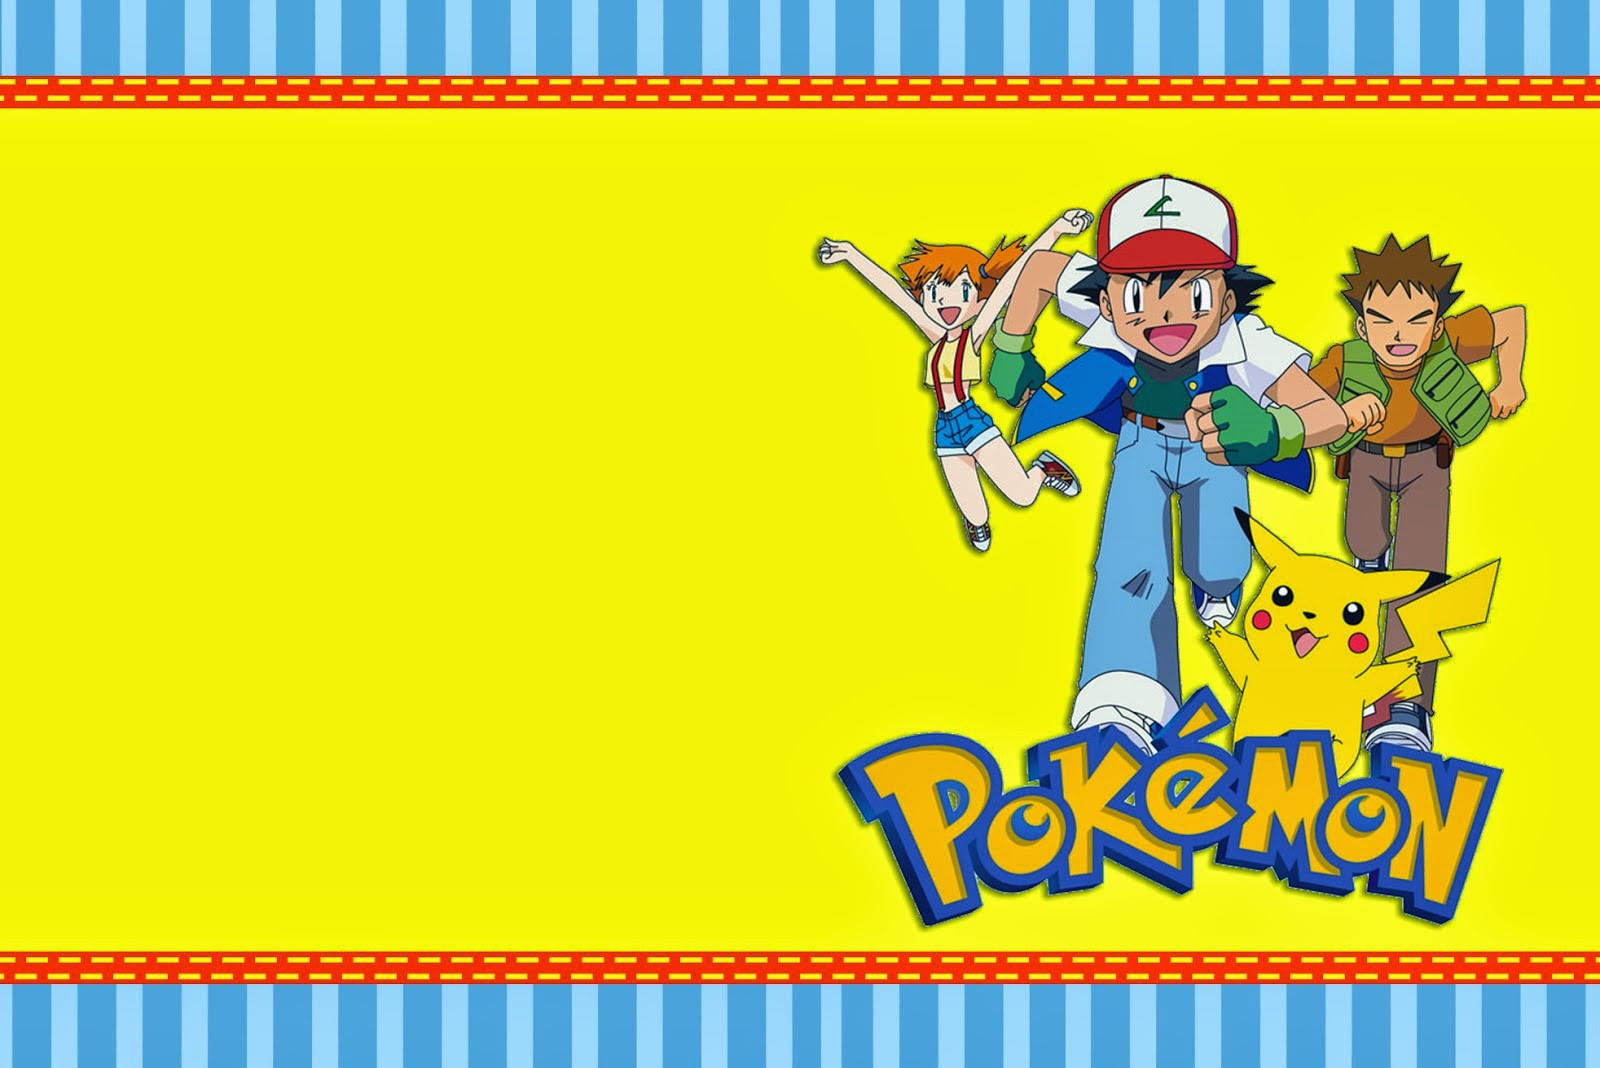 pokemon free printable invitations labels or cards - Free Printable Pokemon Pictures